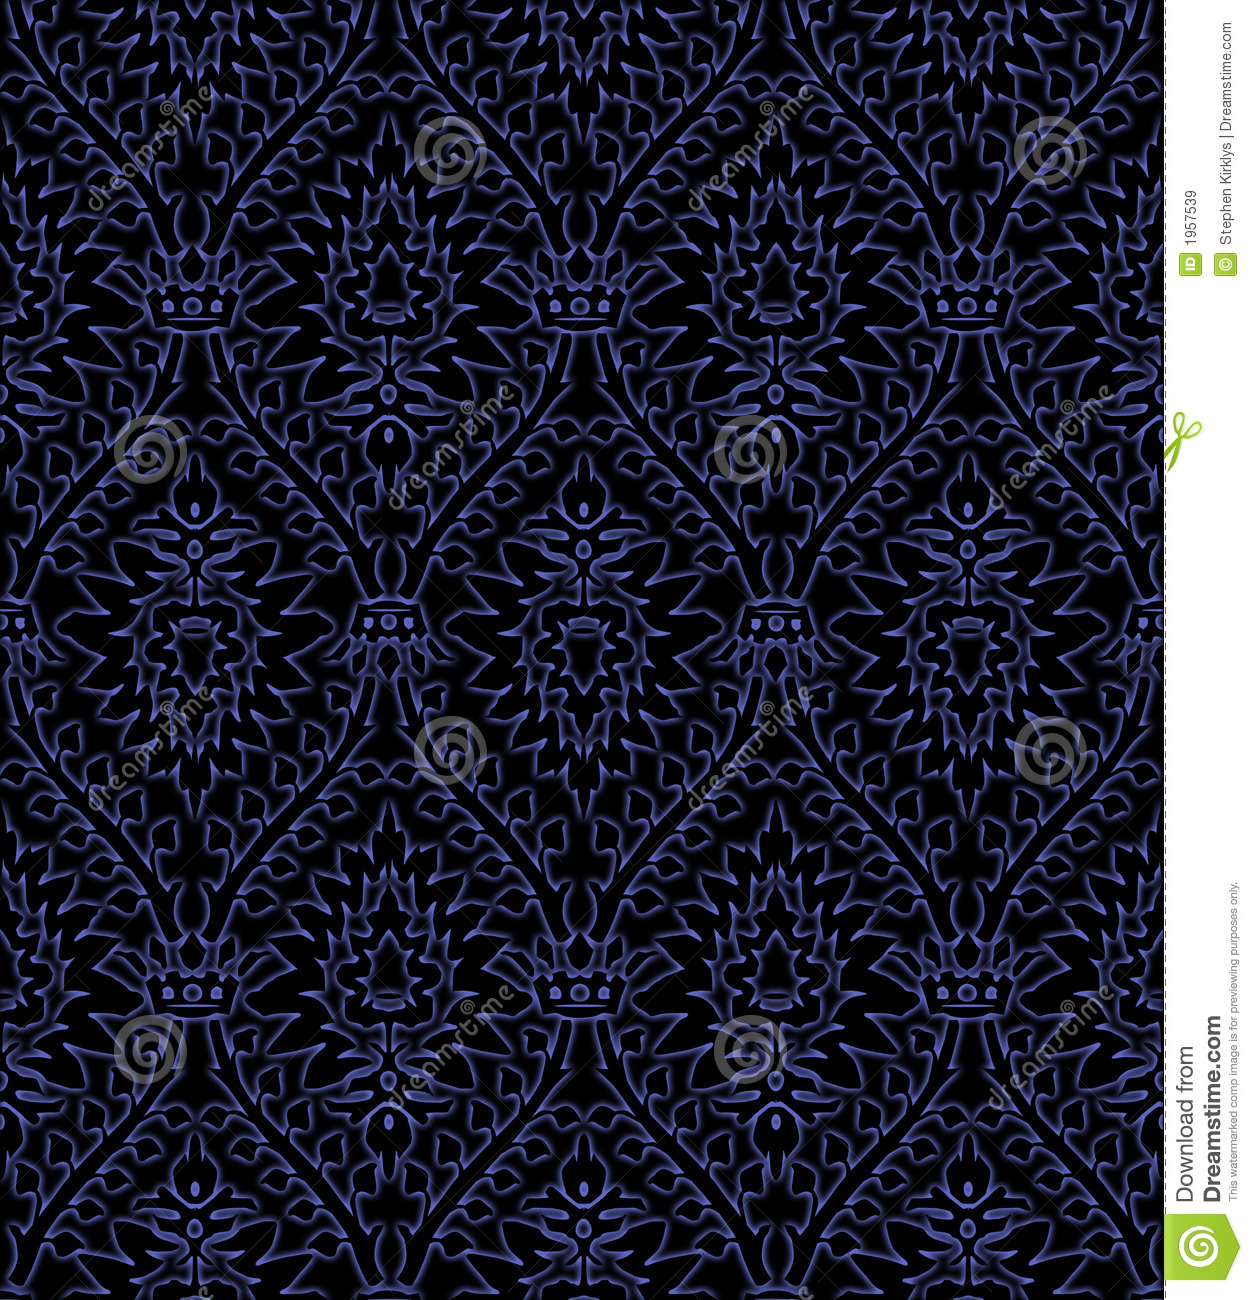 victorian wallpaper 103 royalty free stock images image